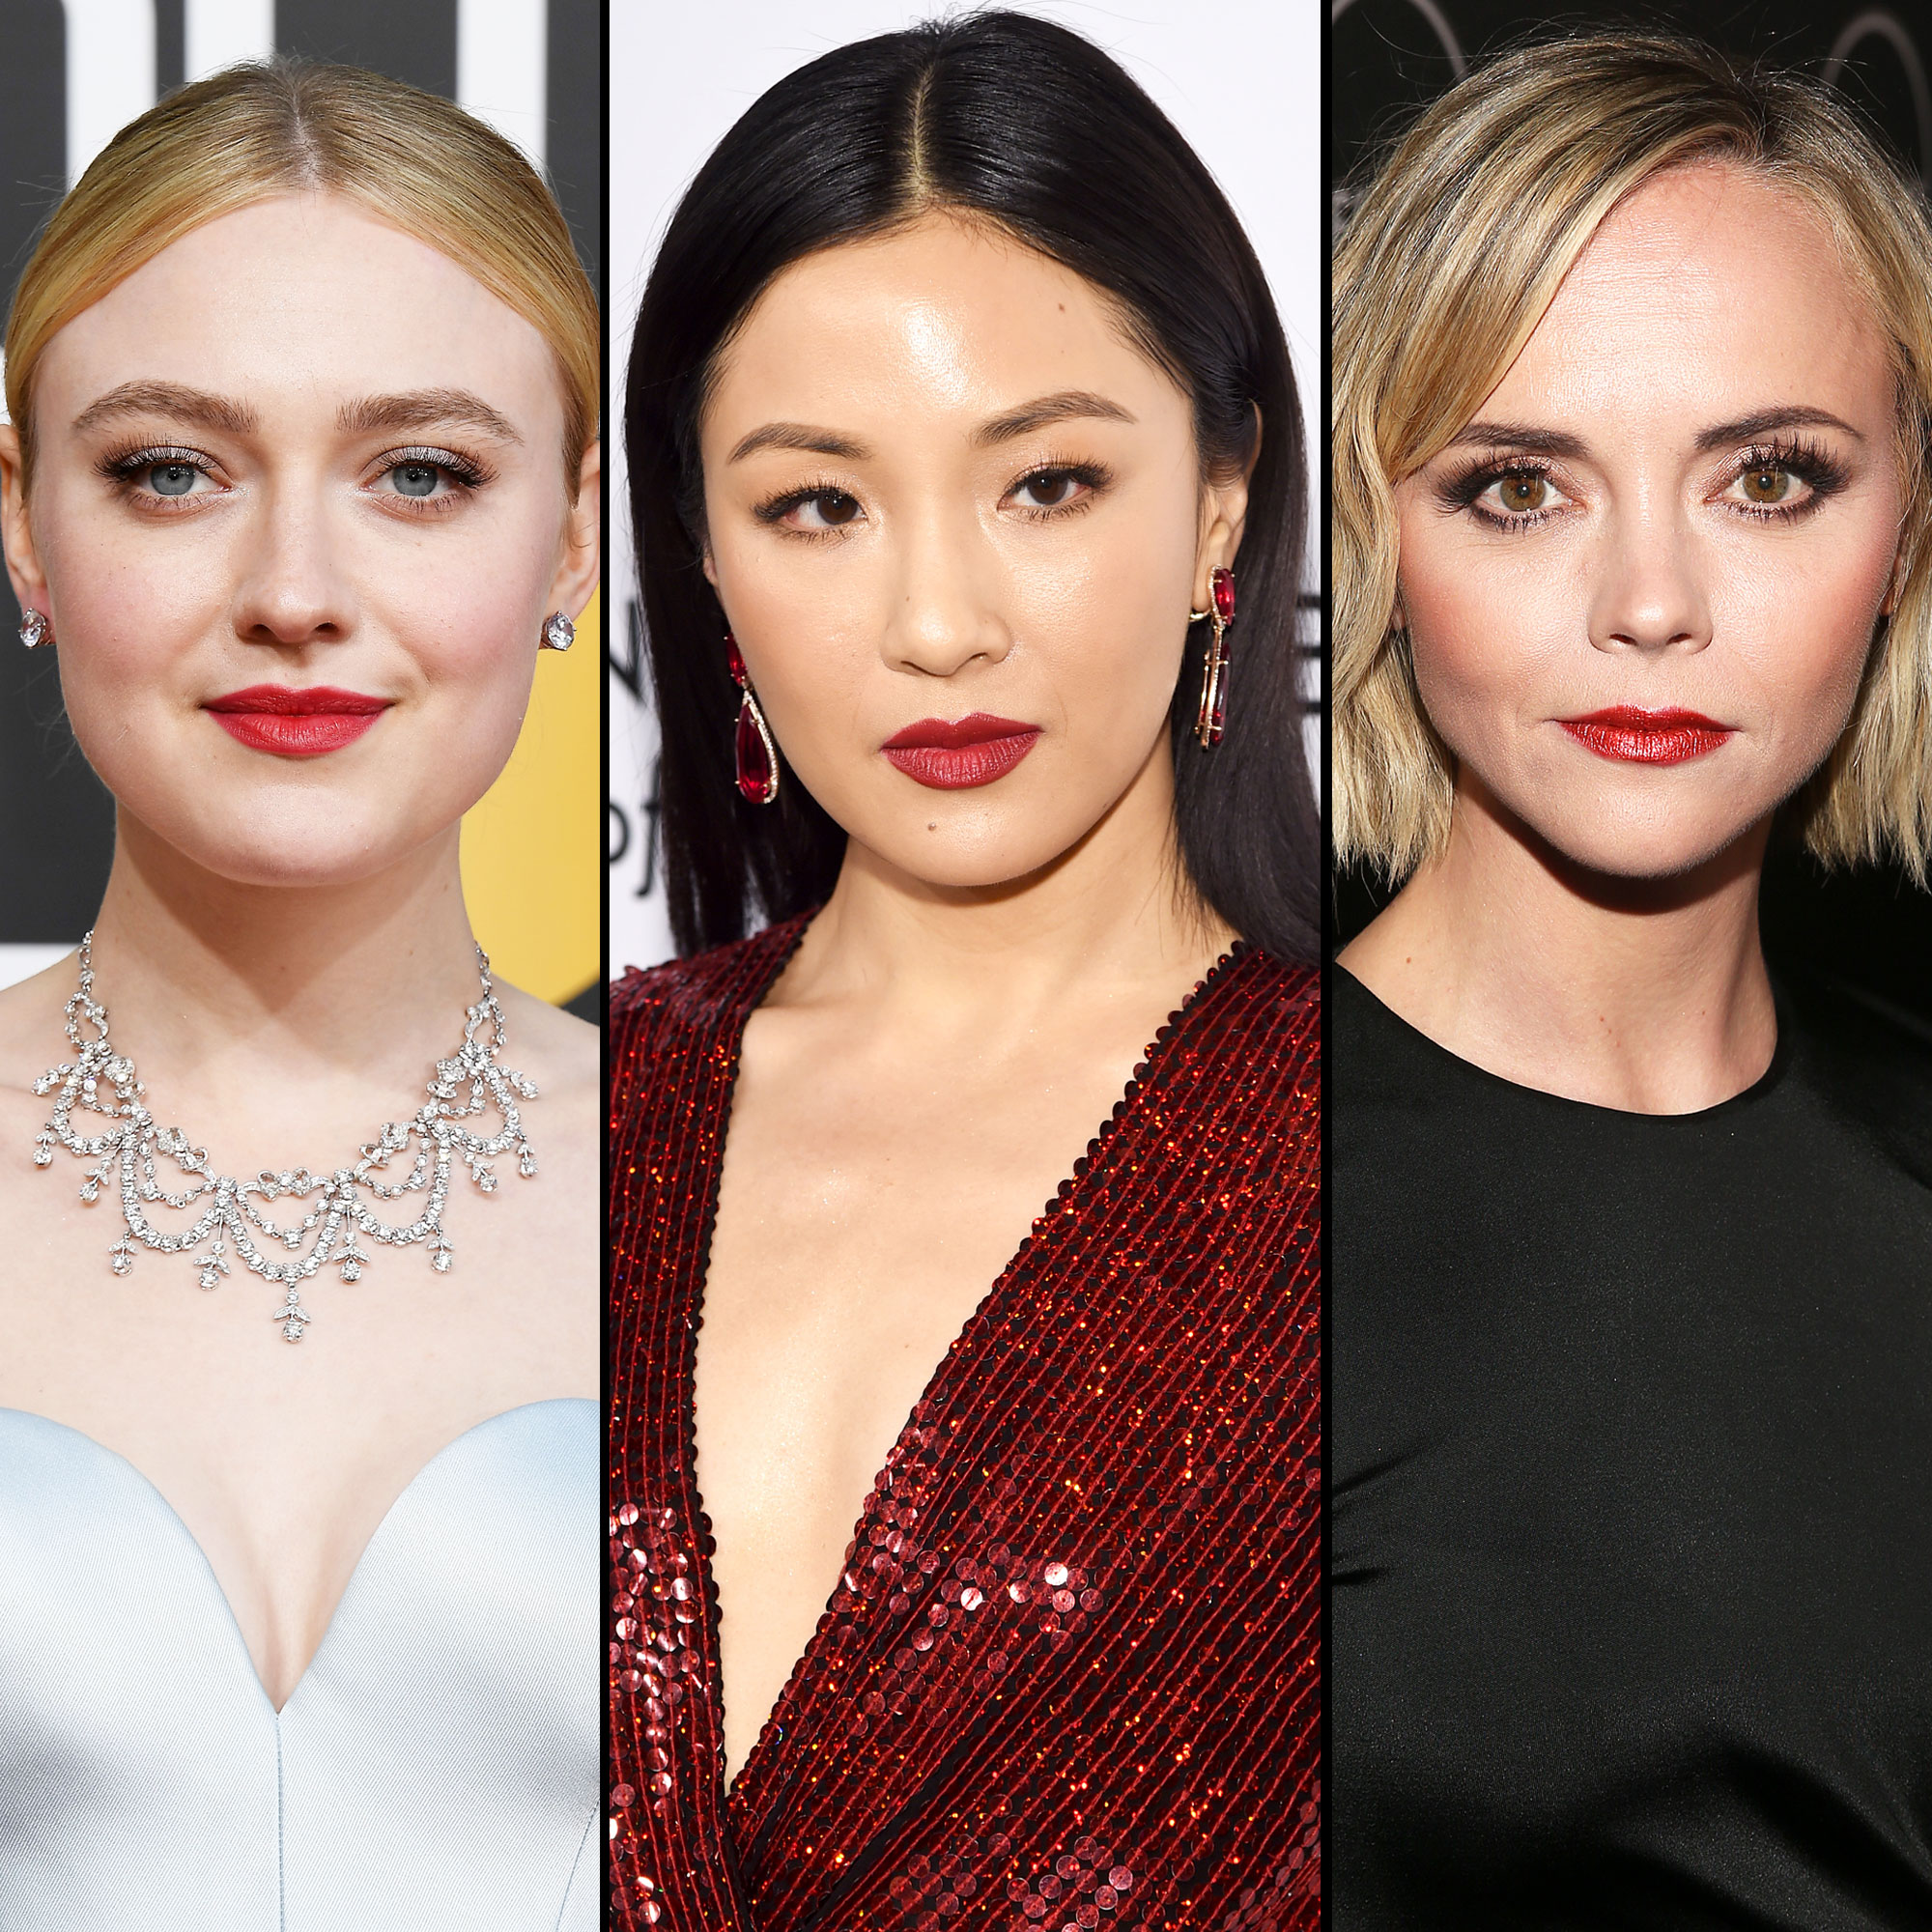 Dakota Fanning, Constance Wu, and Christina Ricci